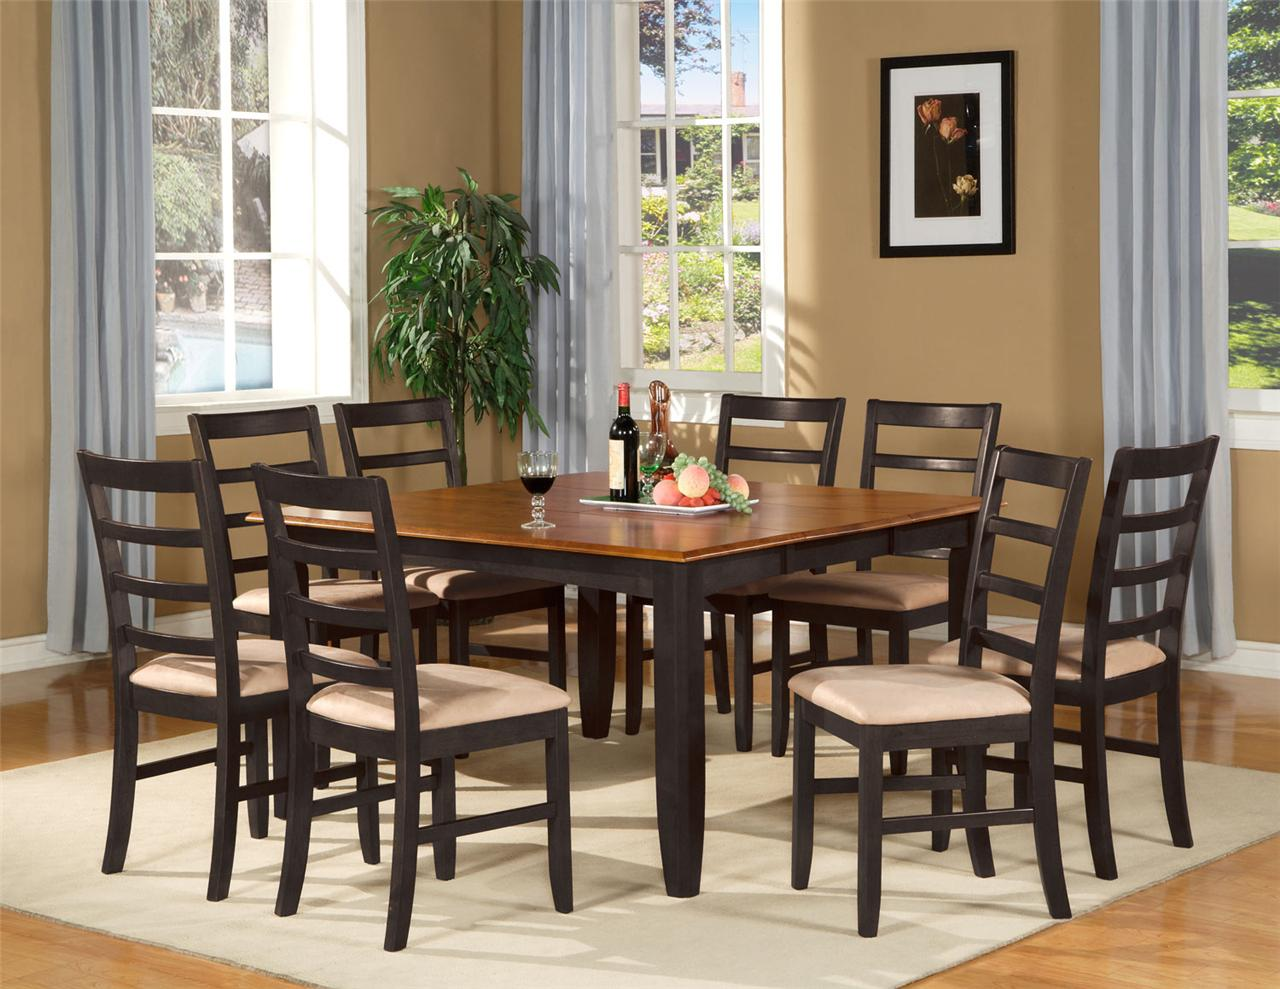 7 pc square dinette kitchen dining table set 6 chairs ebay for Breakfast room sets